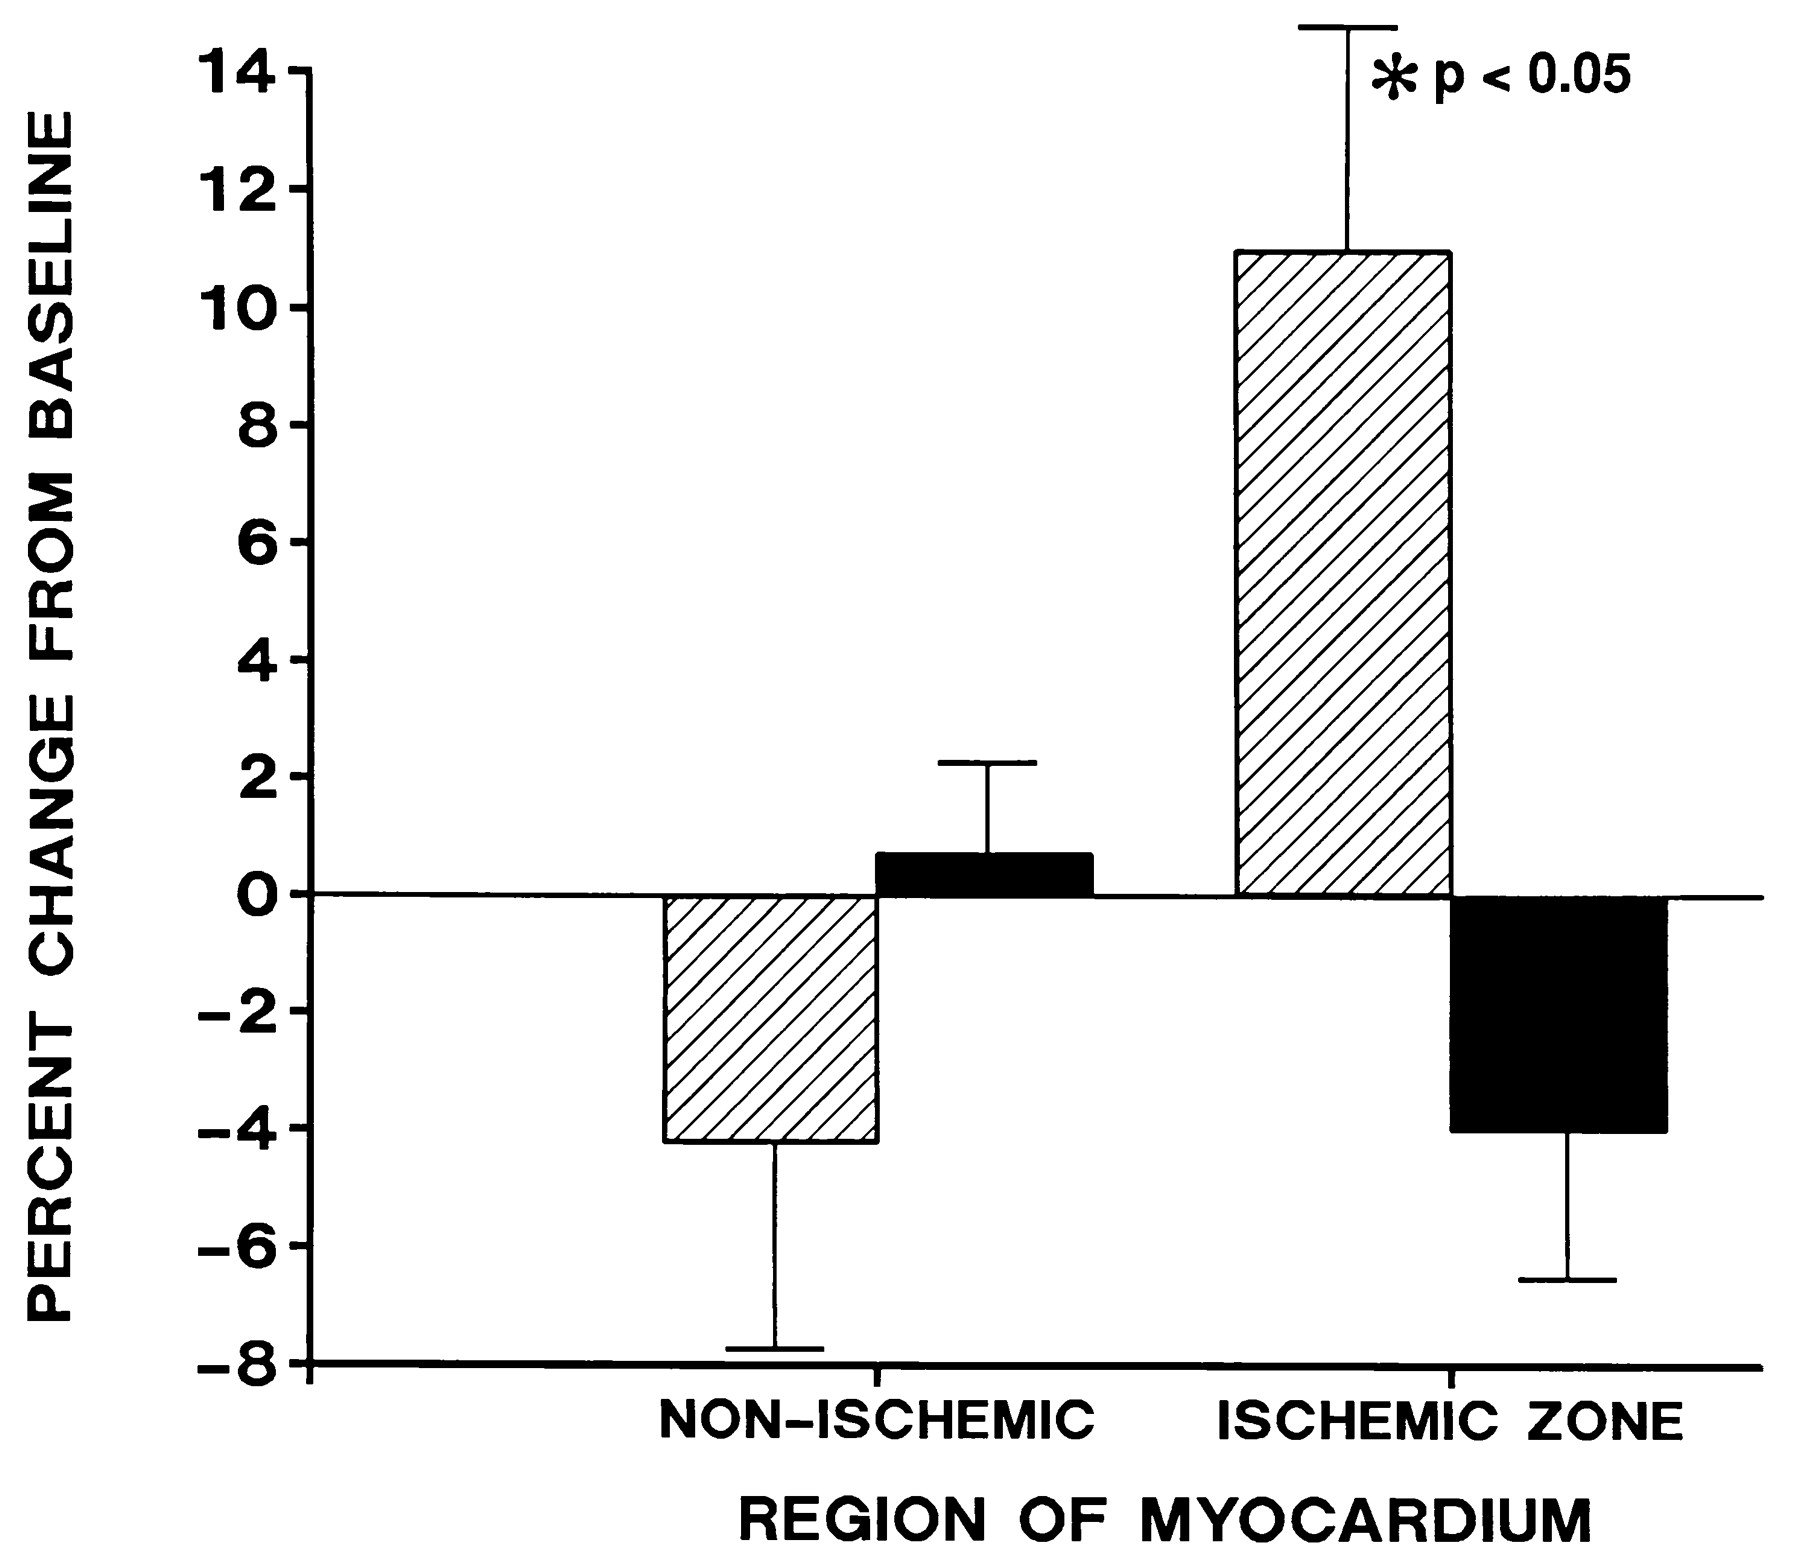 Redistribution of Myocardial Blood Flow With Topical